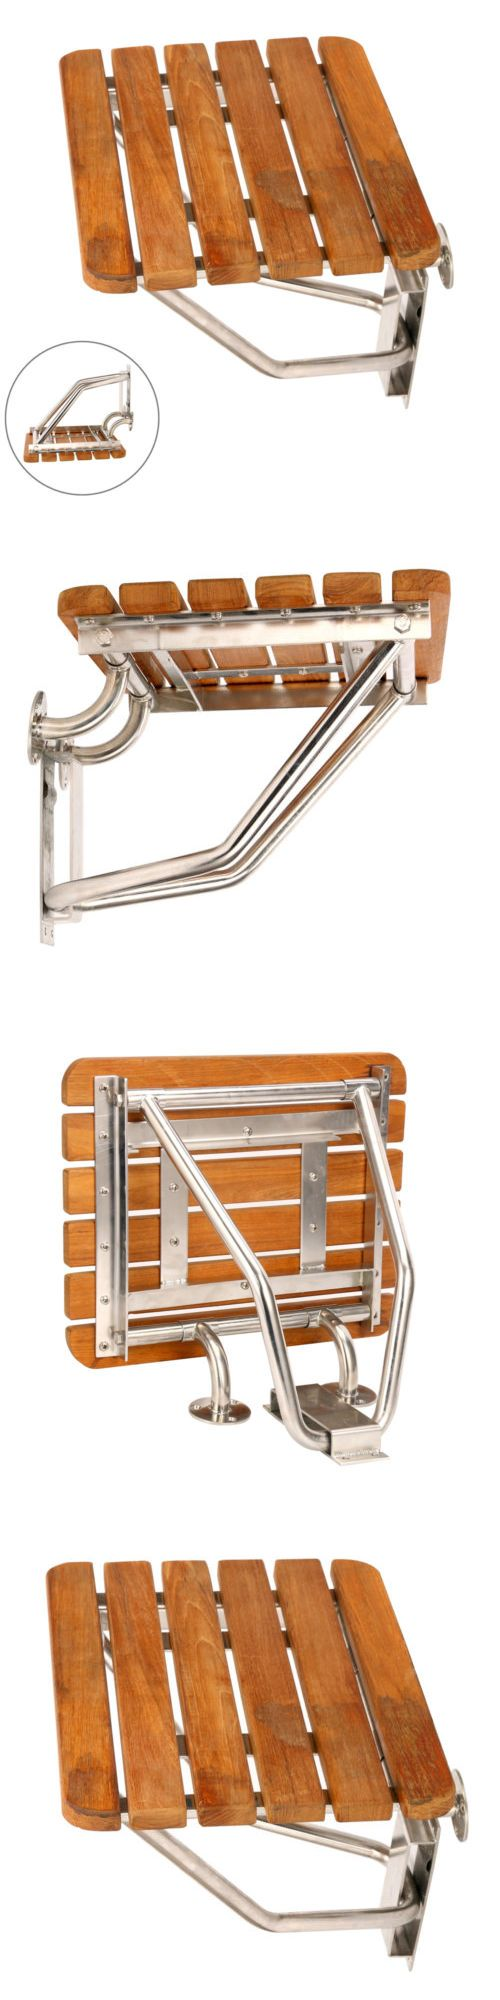 Transfer Boards and Benches: Wall Mounted Folding Teak Shower Transfer Bench Seat Stool -> BUY IT NOW ONLY: $59.99 on eBay!